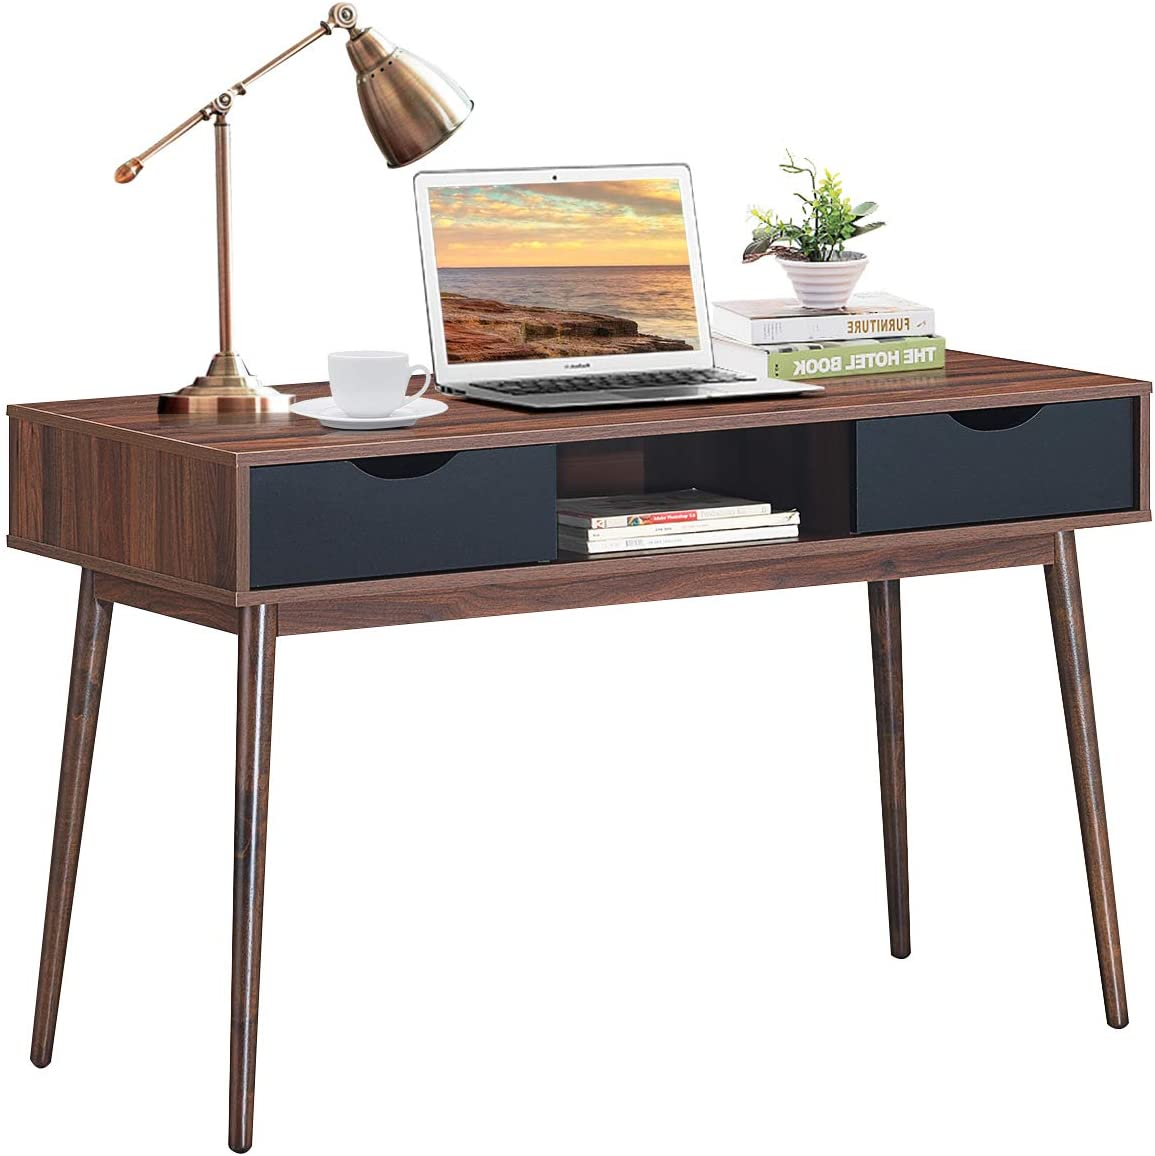 Tangkula Computer Desk with Drawers, Modern Home Office Desk Writing Desk with Spacious Desktop & Sturdy Construction, Compact Laptop Table Workstation, Desk for Bedroom Home Office (Walnut)